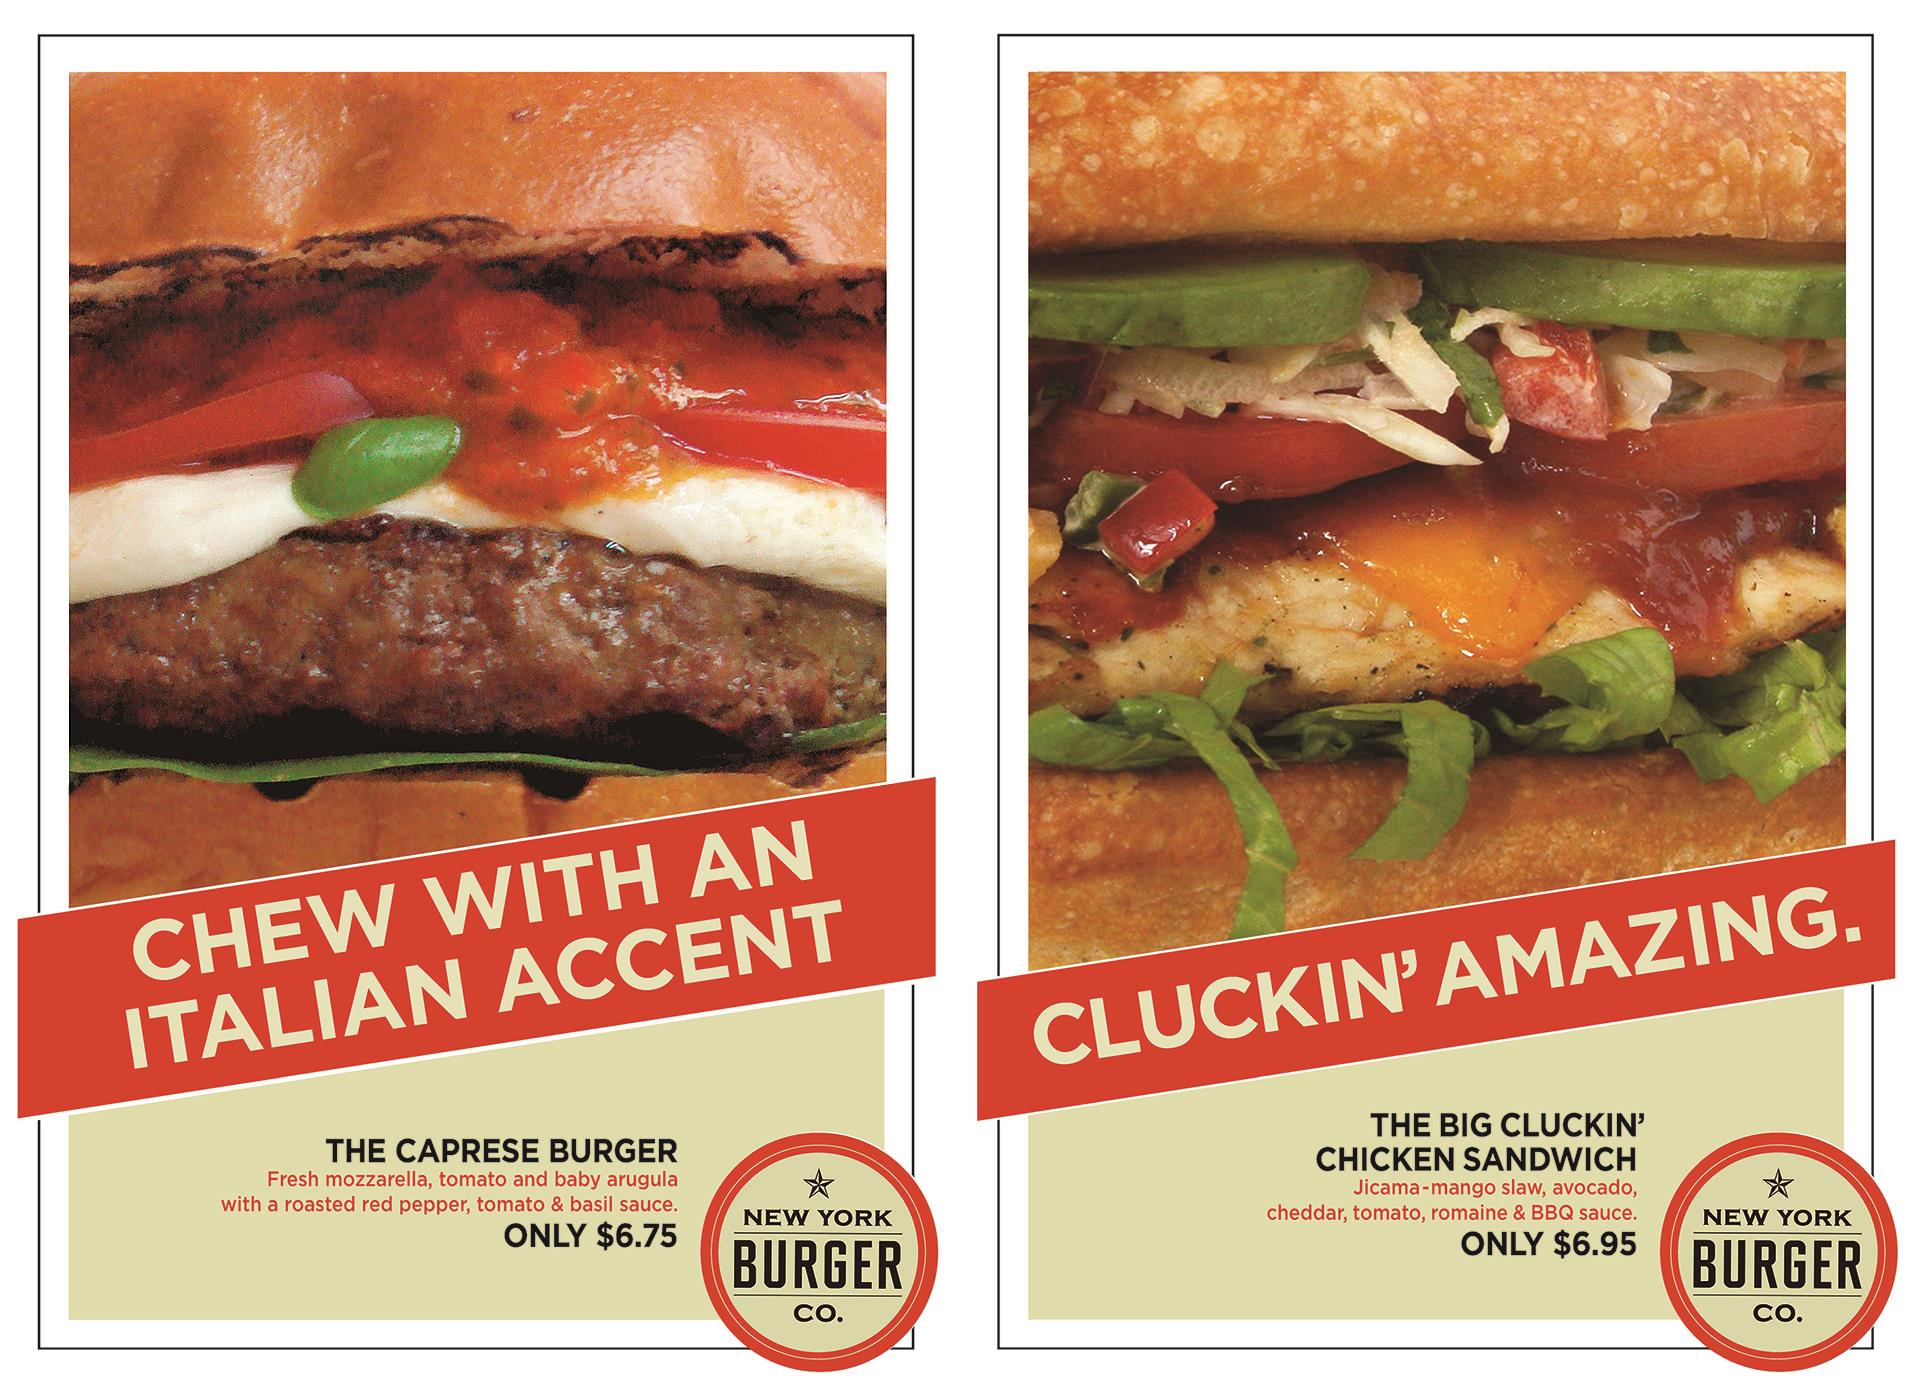 New York Burger Company - Print Campaign.